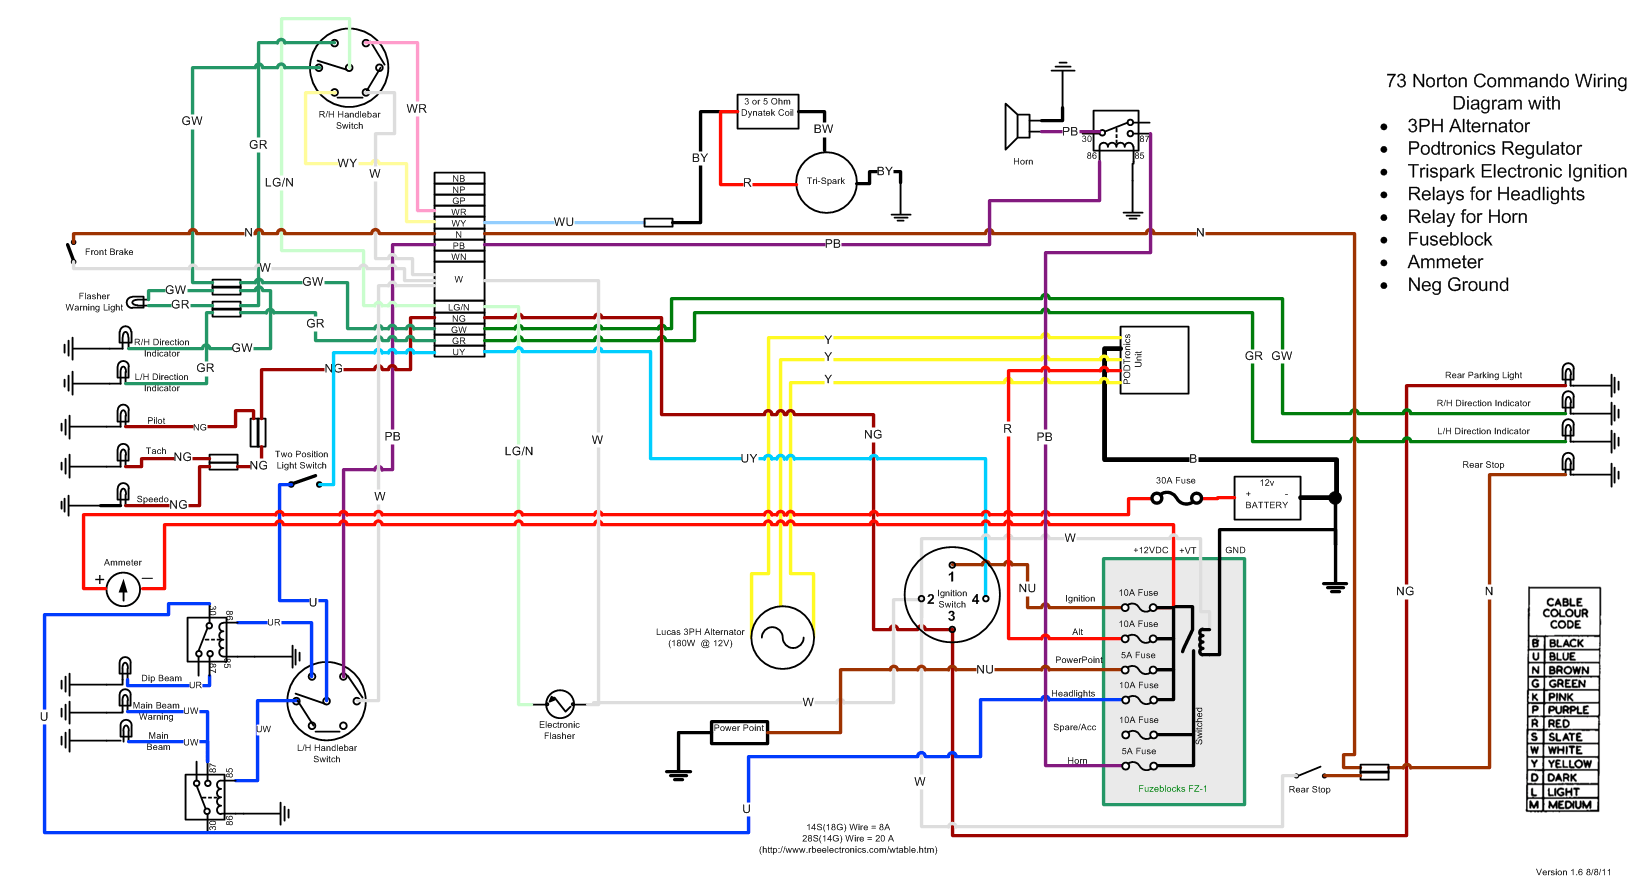 DIAGRAM] 1980 Honda Cdi Box Wiring Diagram FULL Version HD Quality Wiring  Diagram - LENDIAGRAM62.ICMONTECCHIARONCA.IT